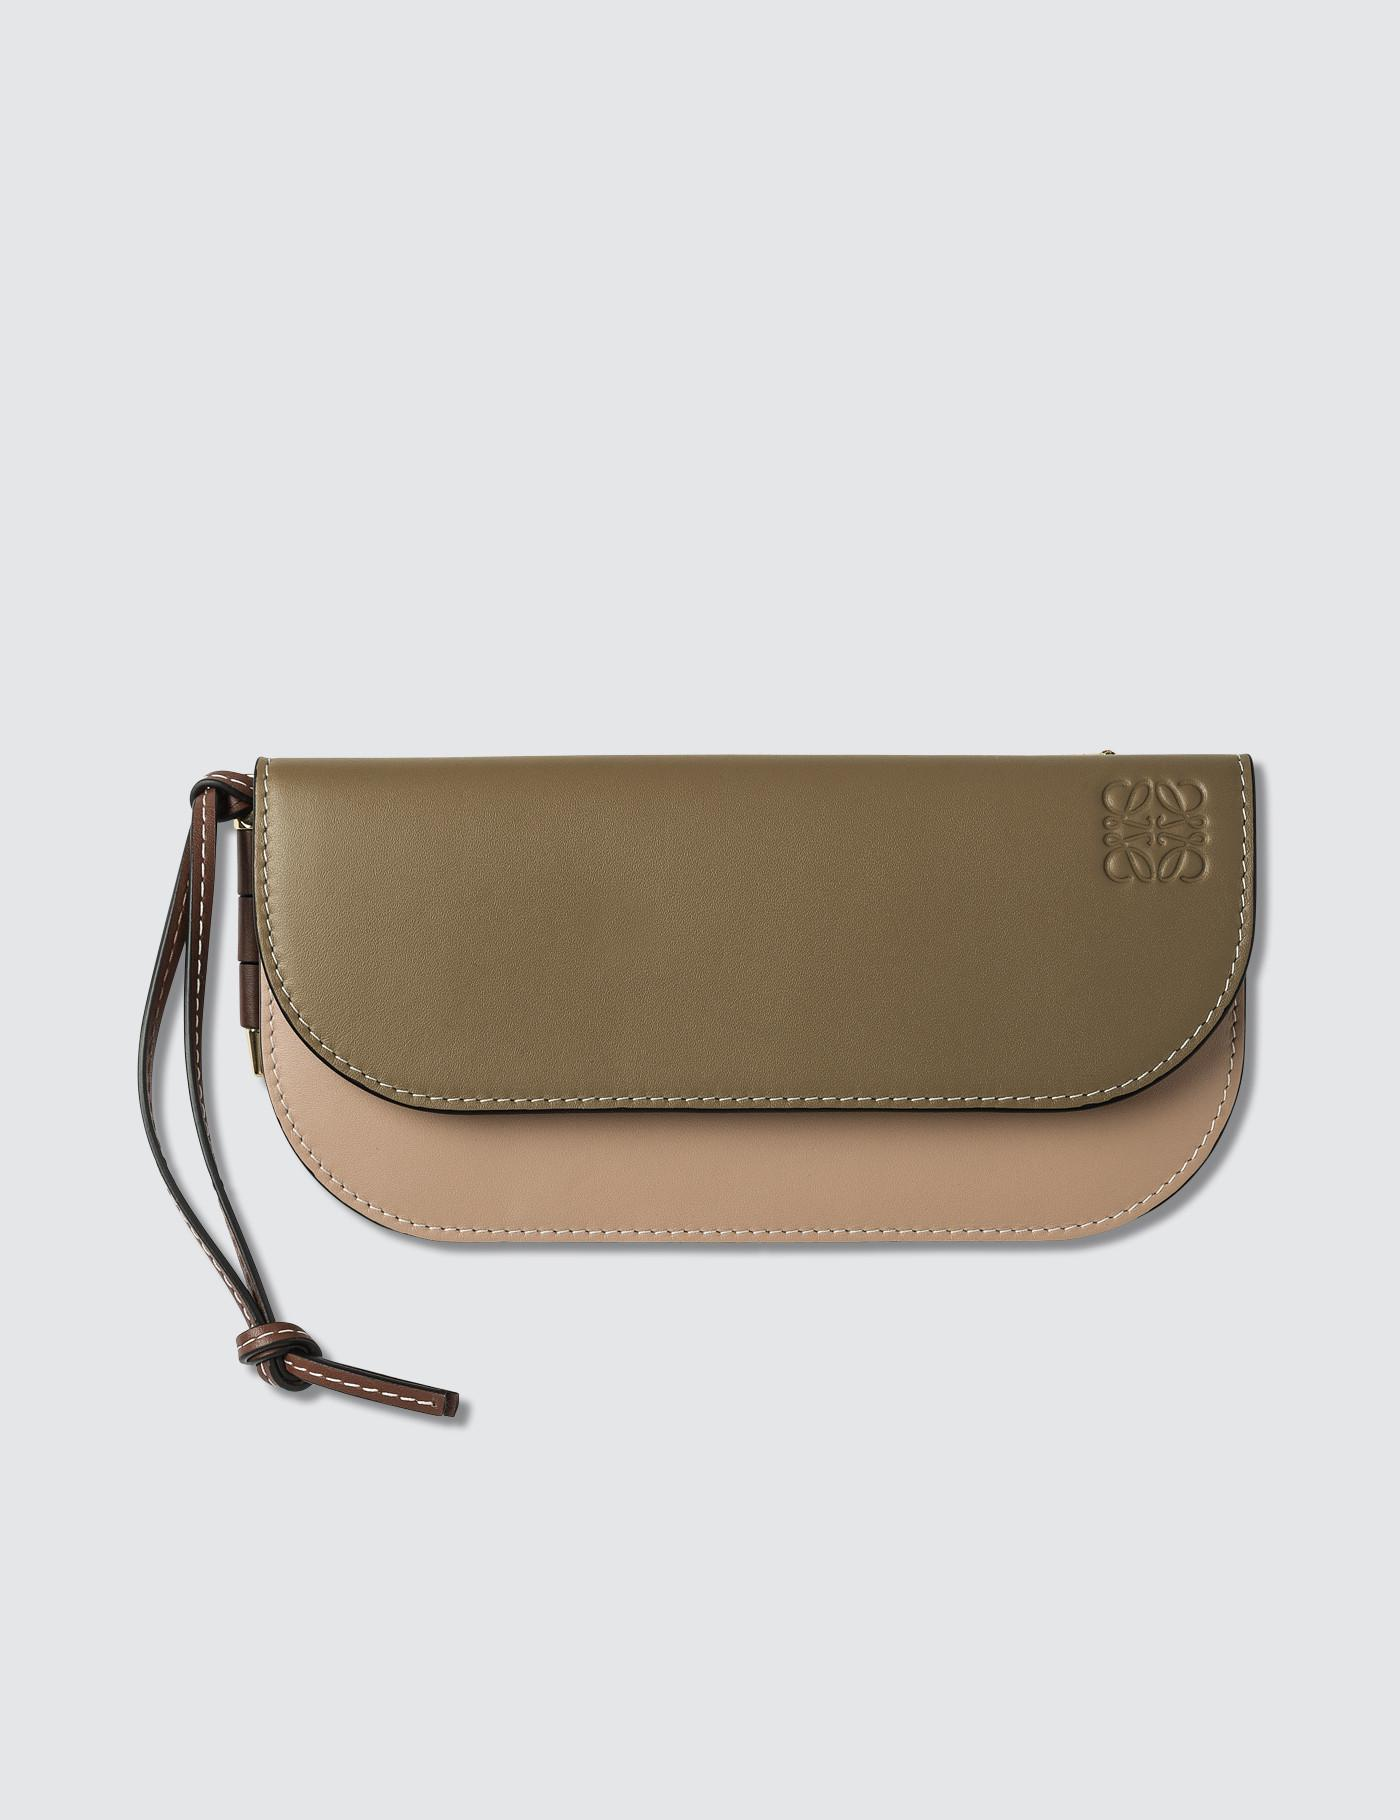 77682773eb0c Lyst - Loewe Gate Continental Wallet in Natural